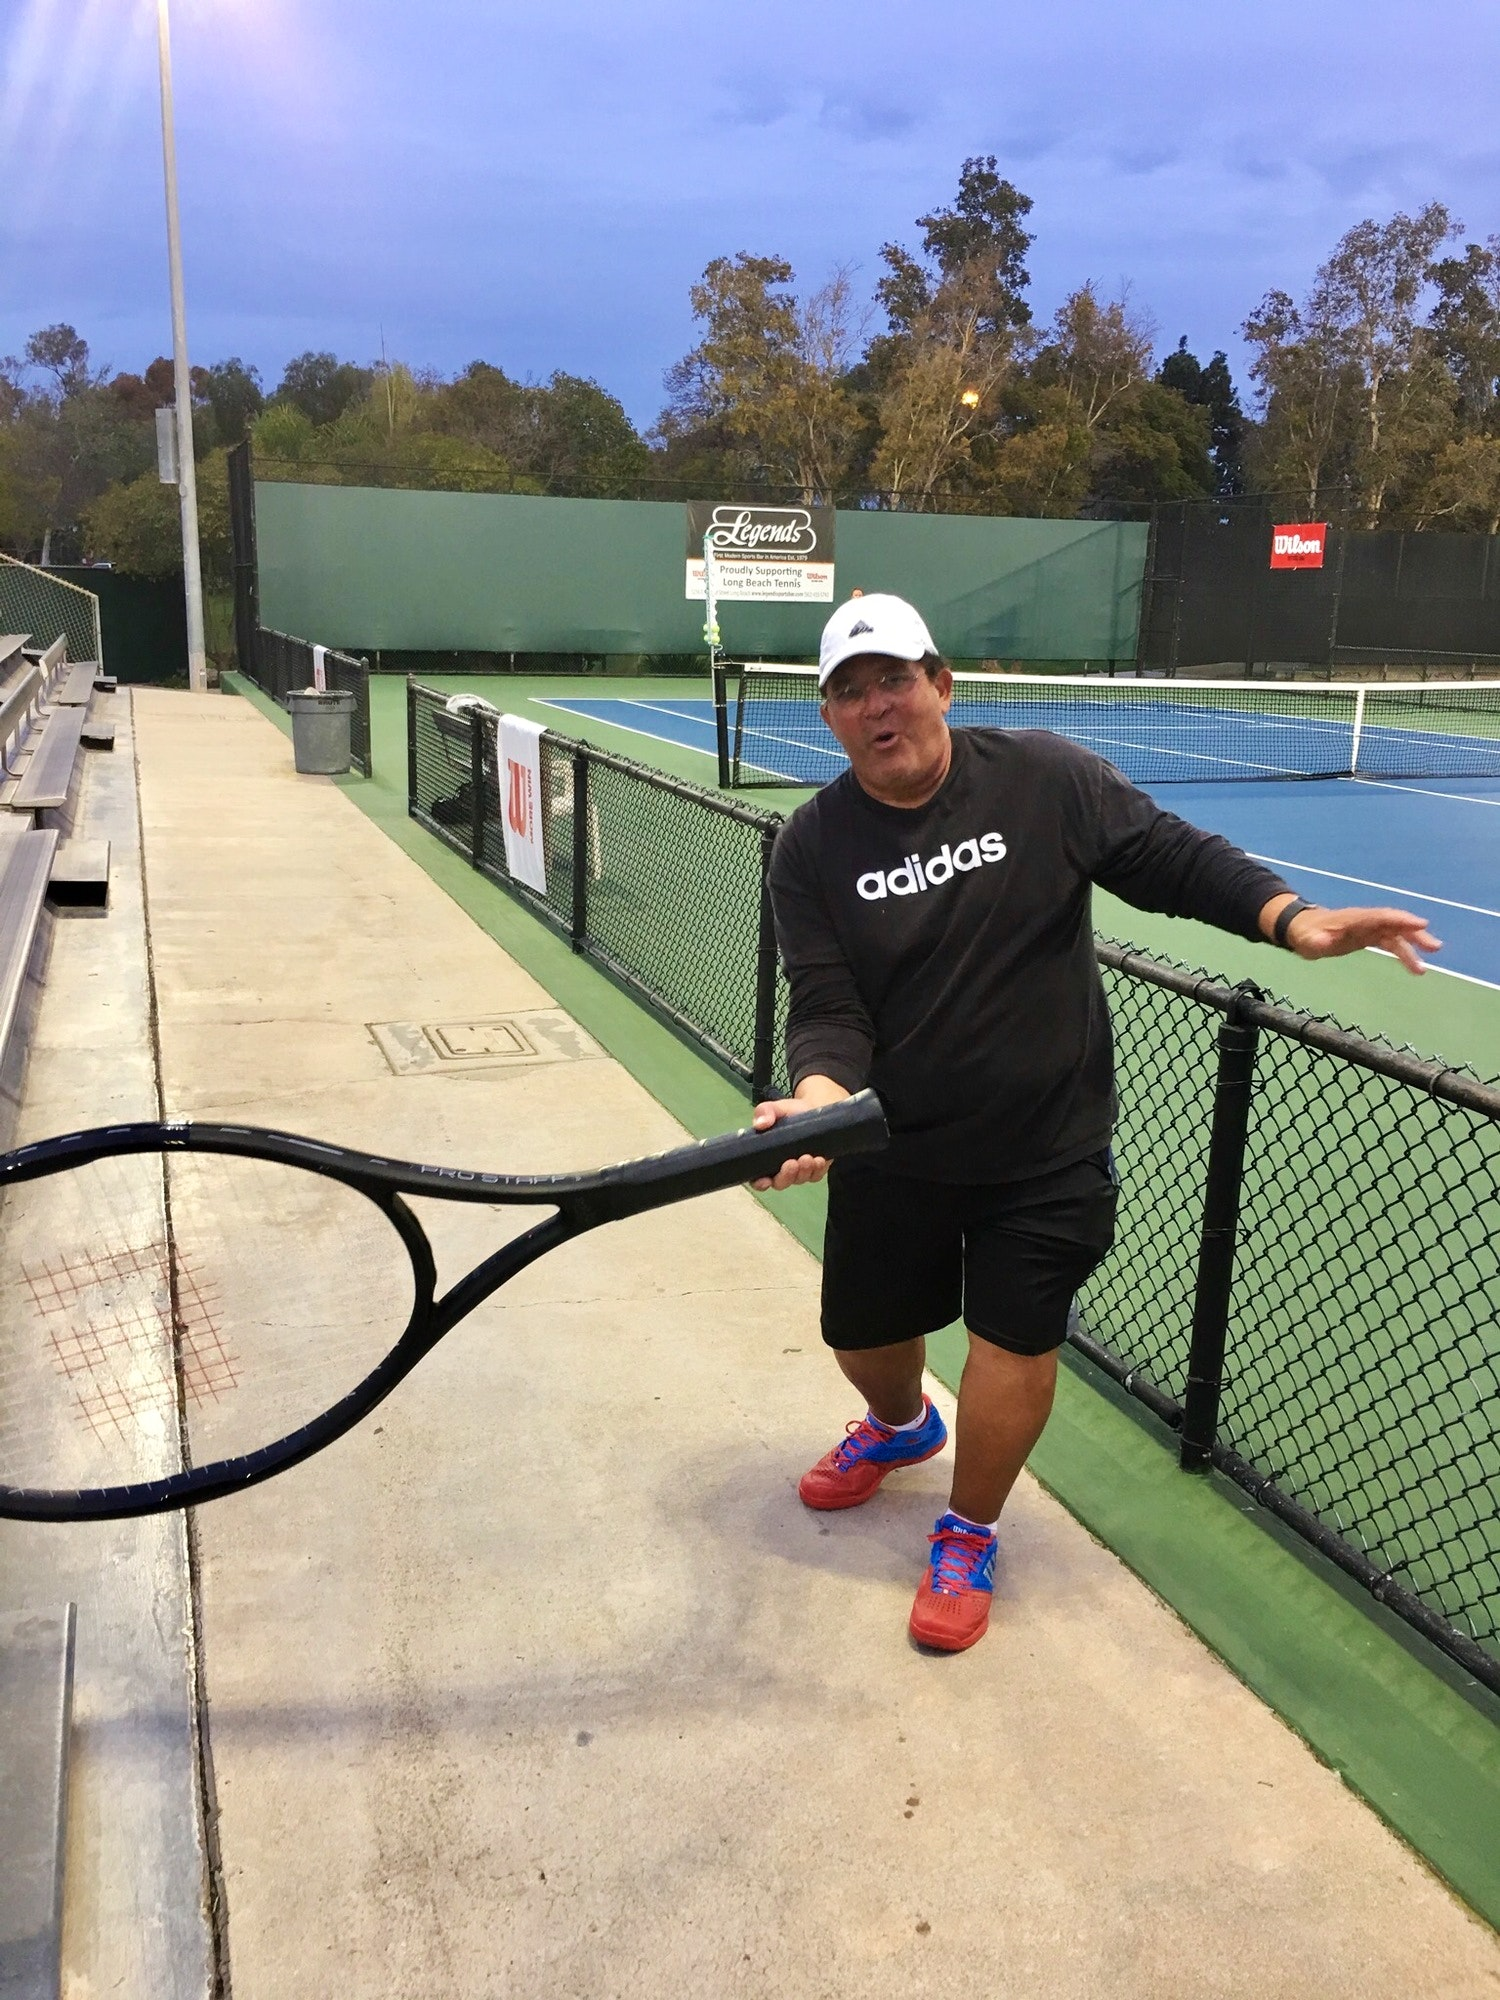 Joe S. teaches tennis lessons in Downey, CA